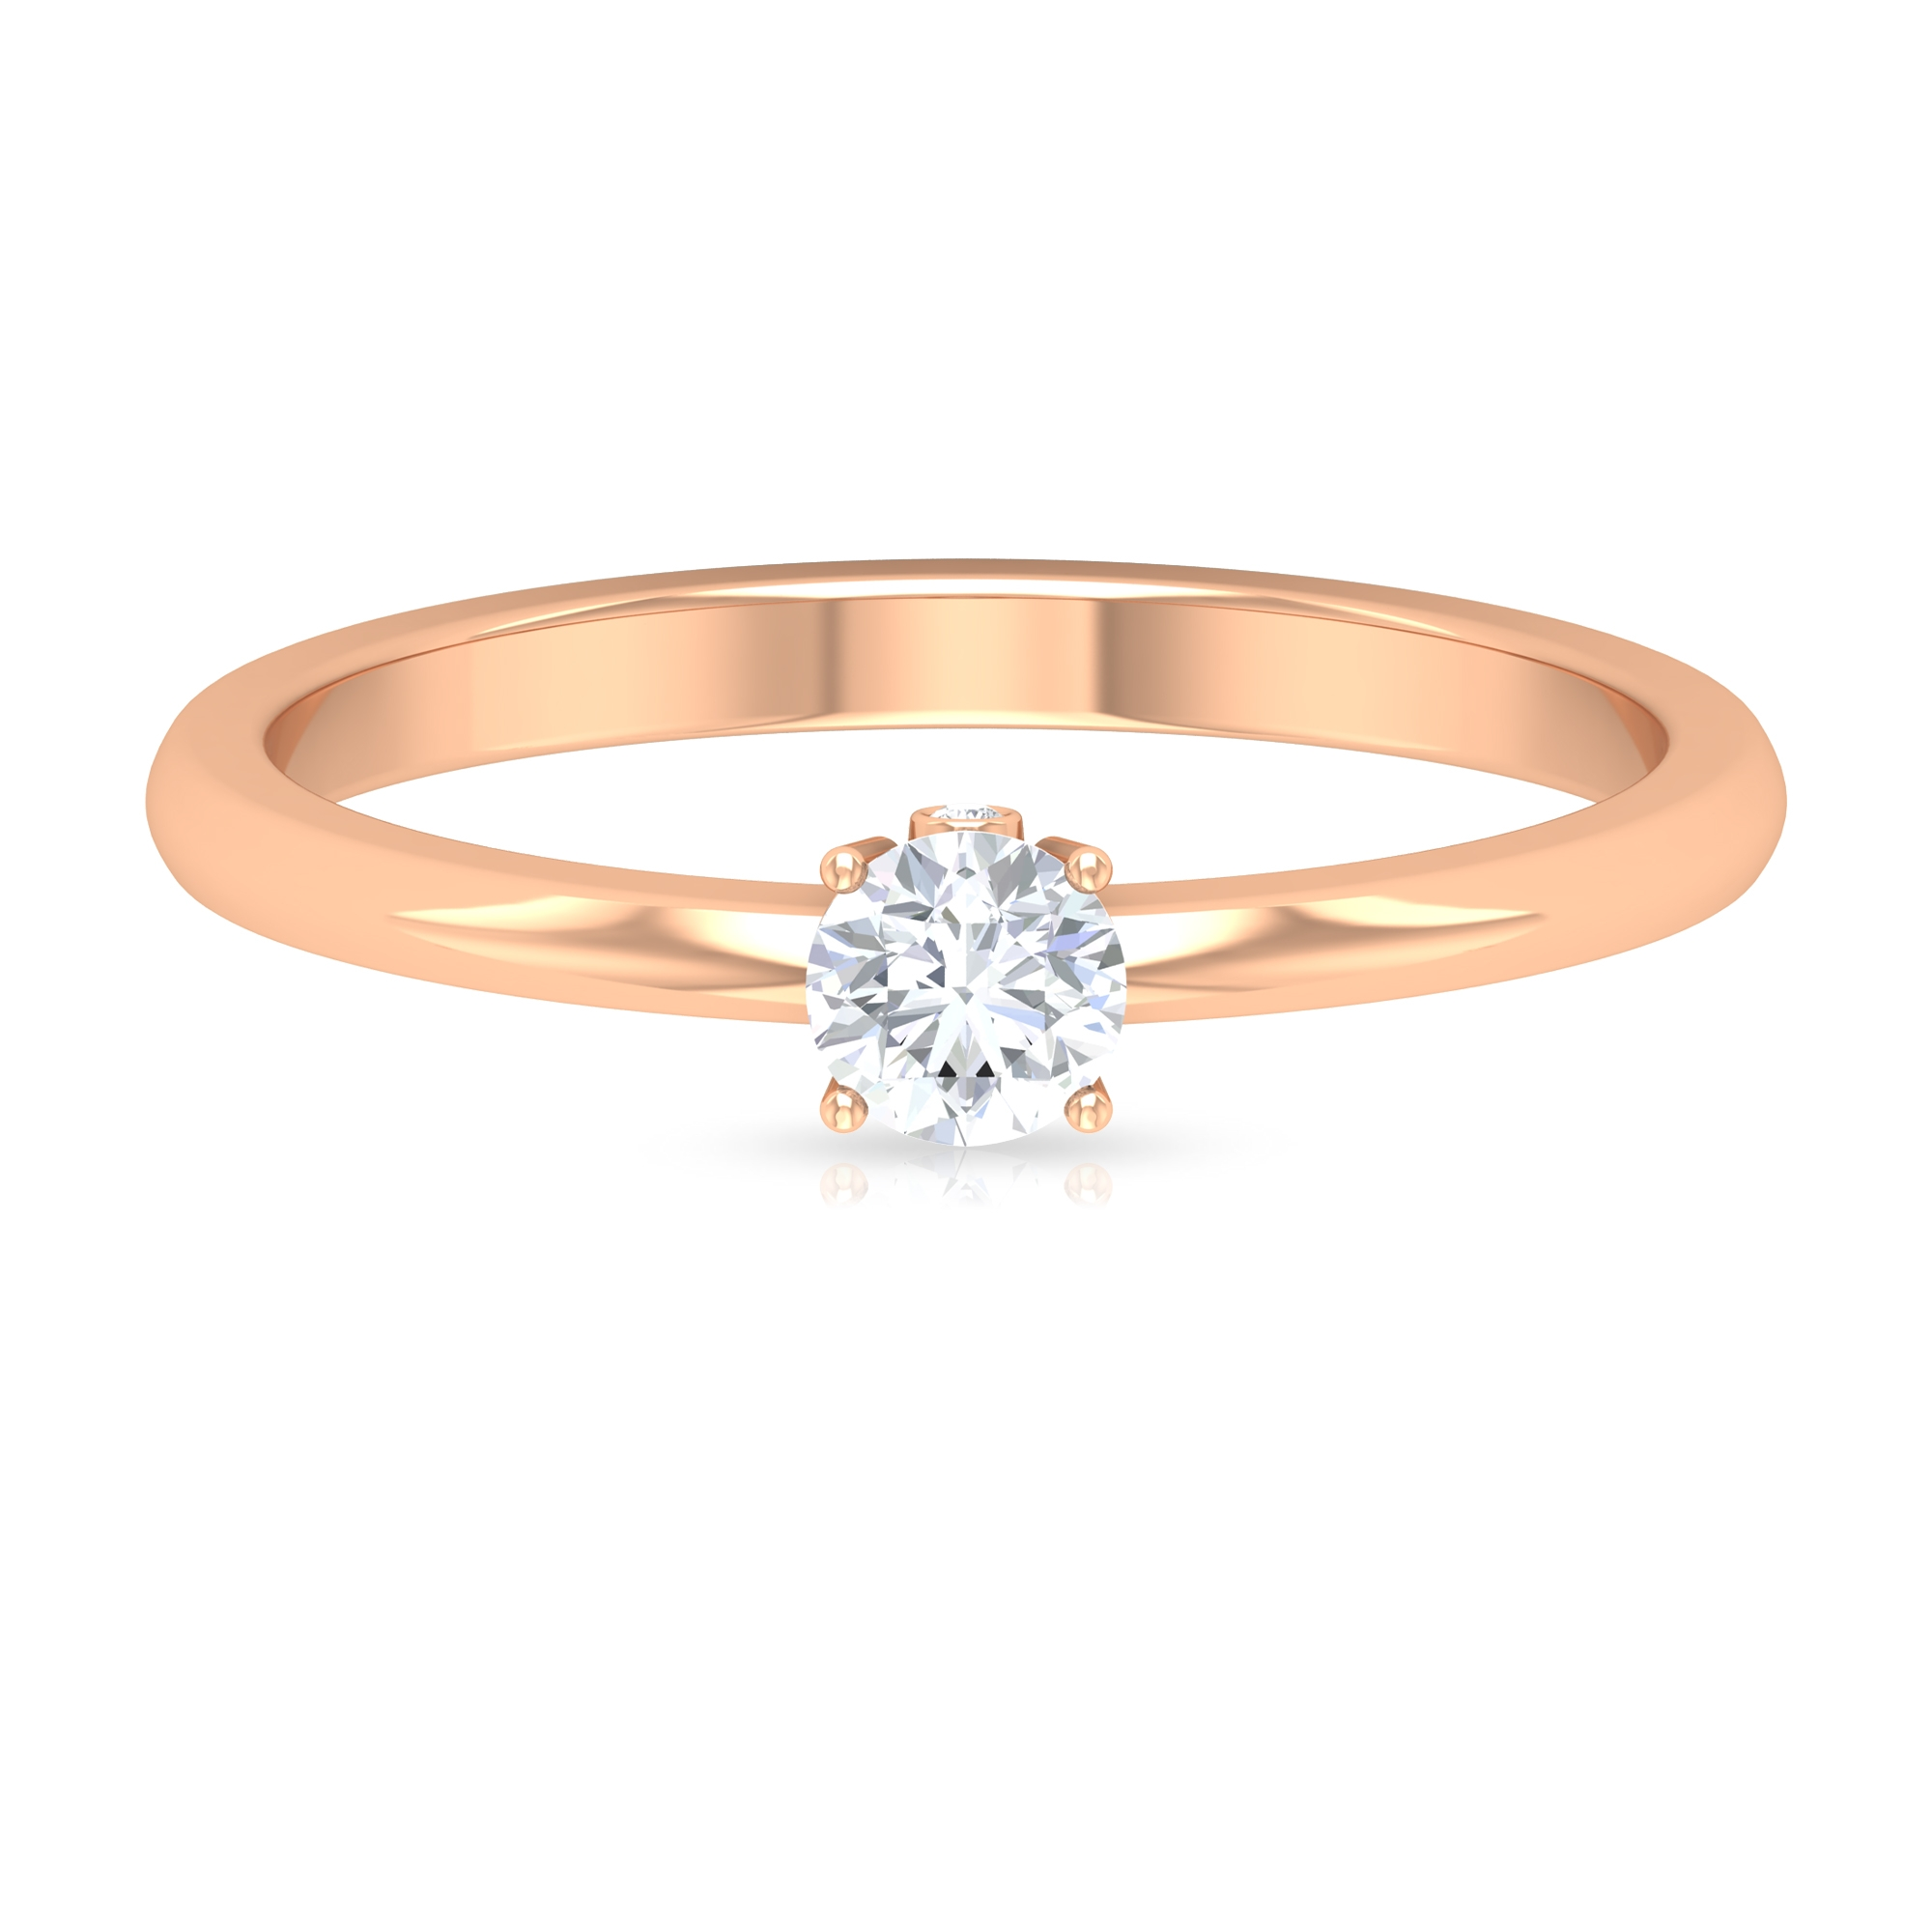 1/4 CT Round Cut Diamond Solitaire Ring in 4 Prong Setting and Surprise Style